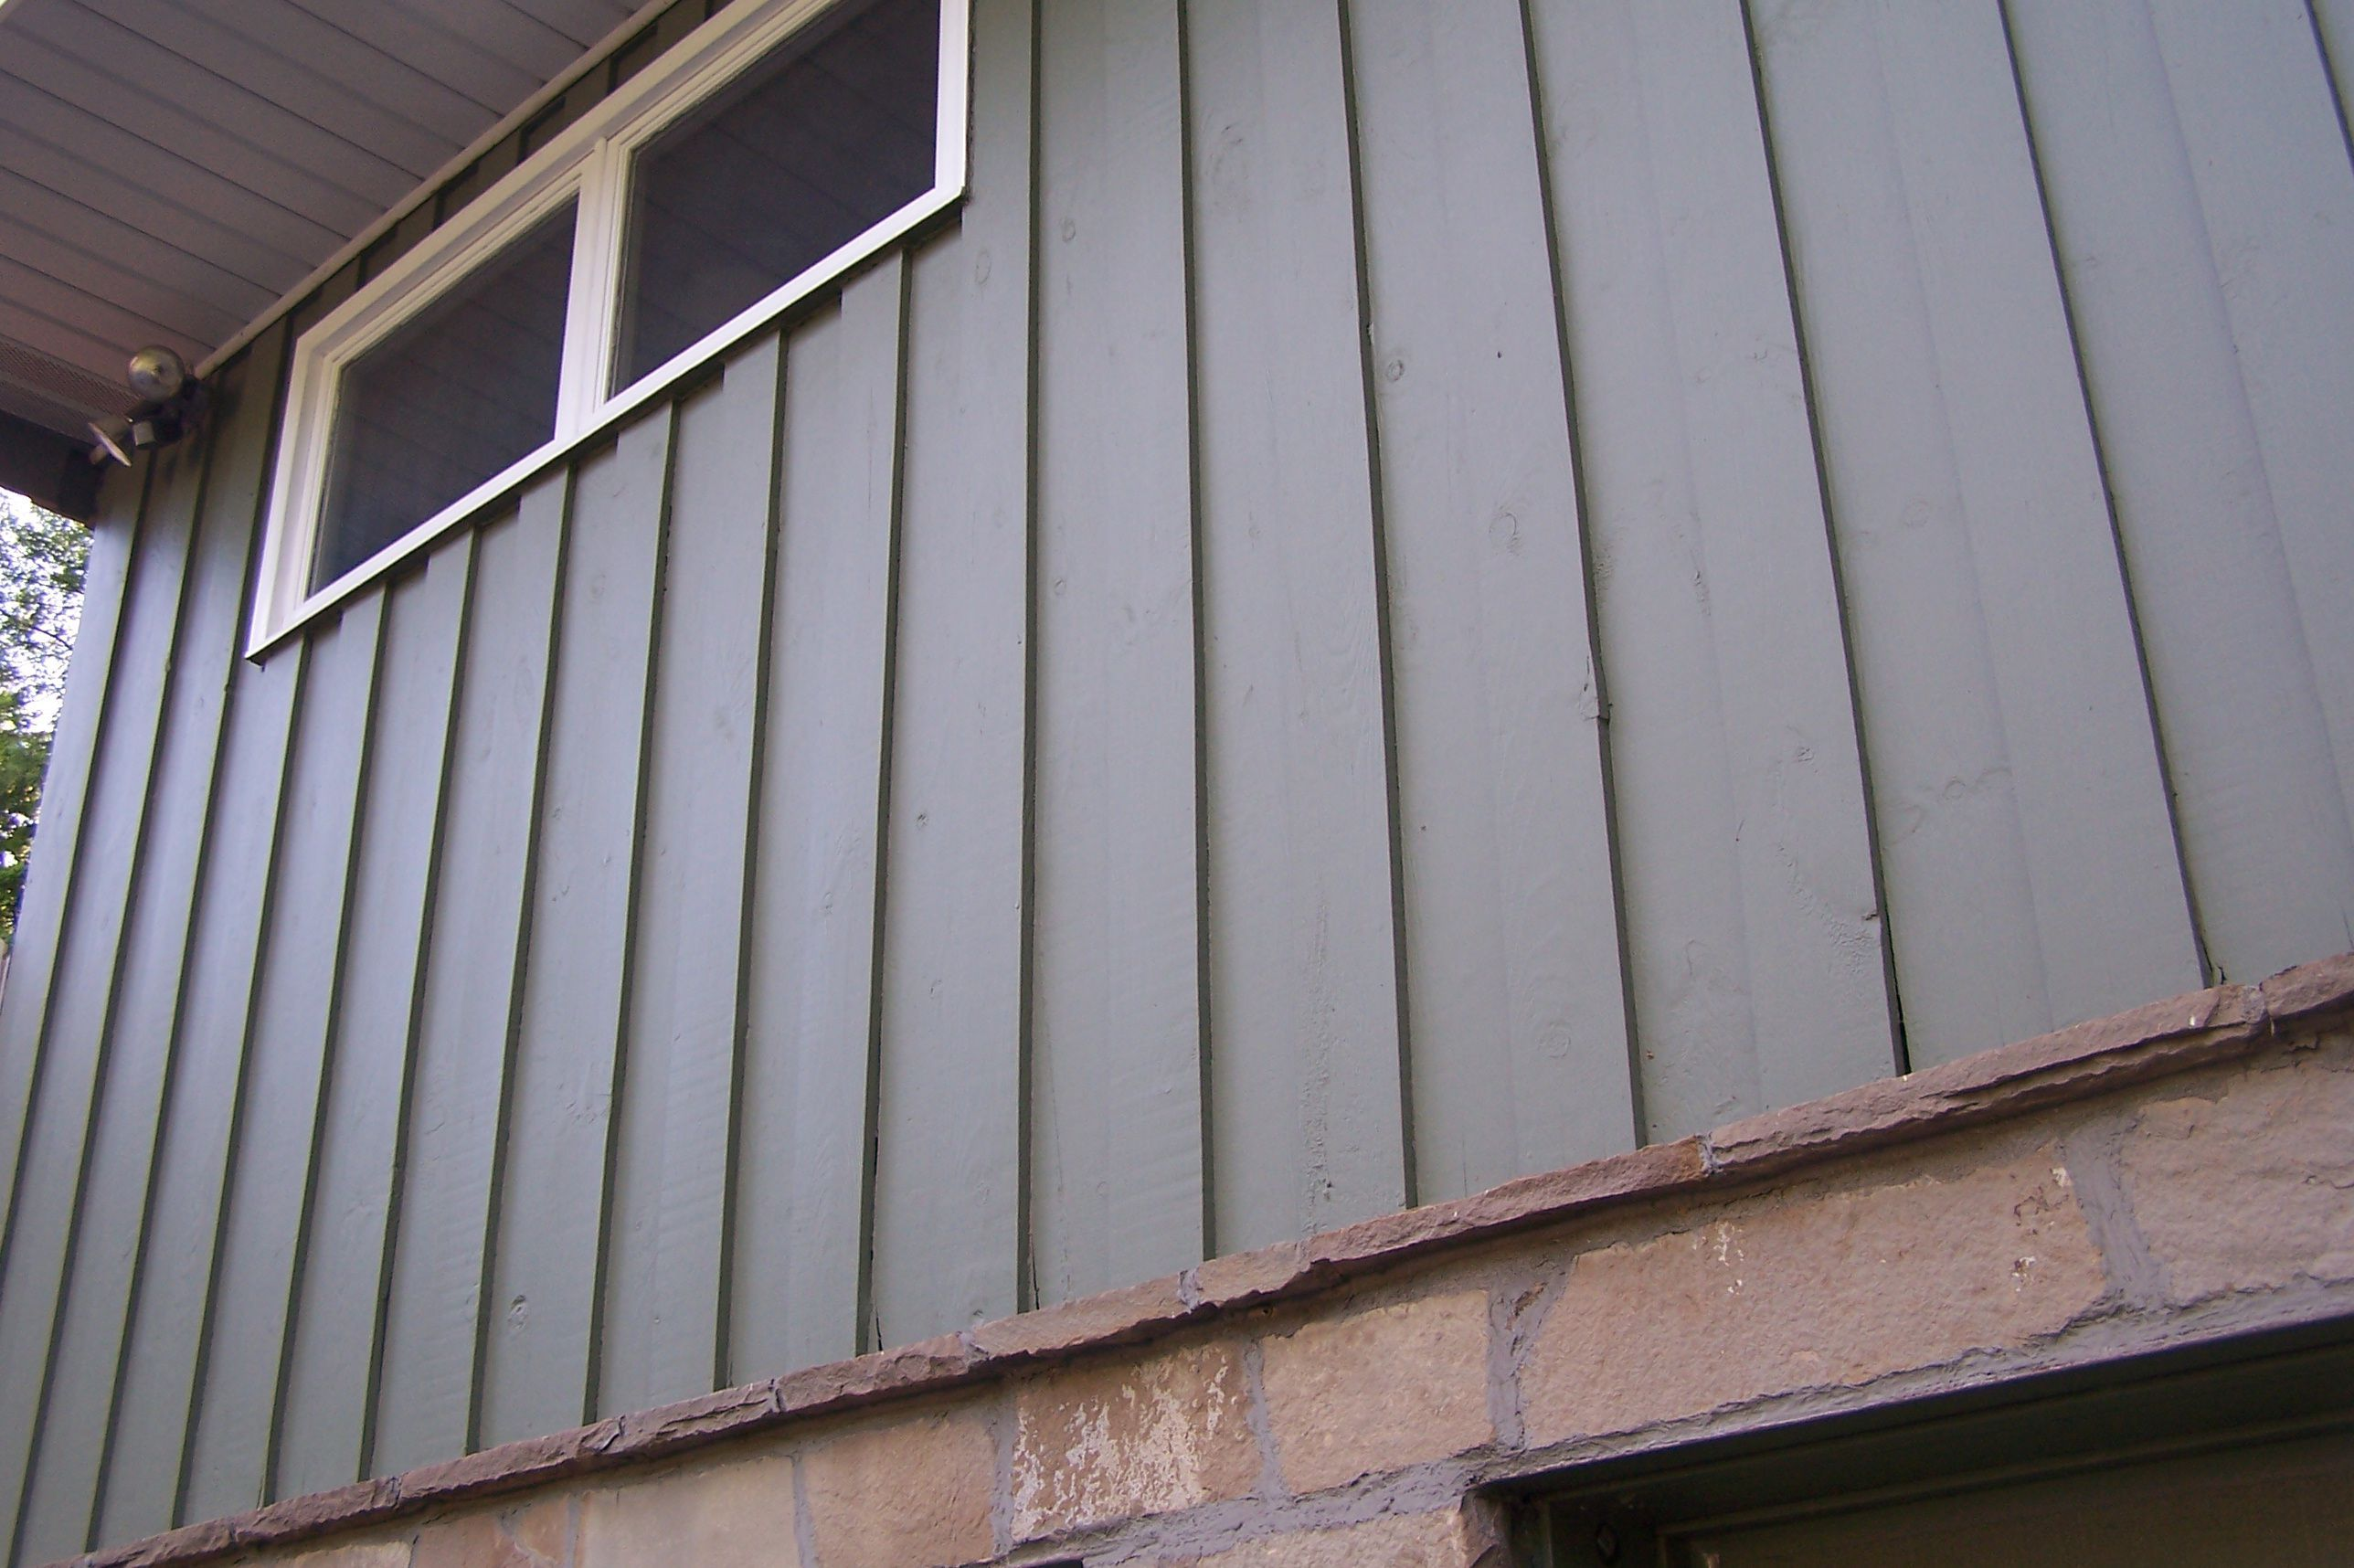 How To Set Up Board And Batten Or Exterior Siding Board And Batten Board And Batten Exterior Board And Batten Siding